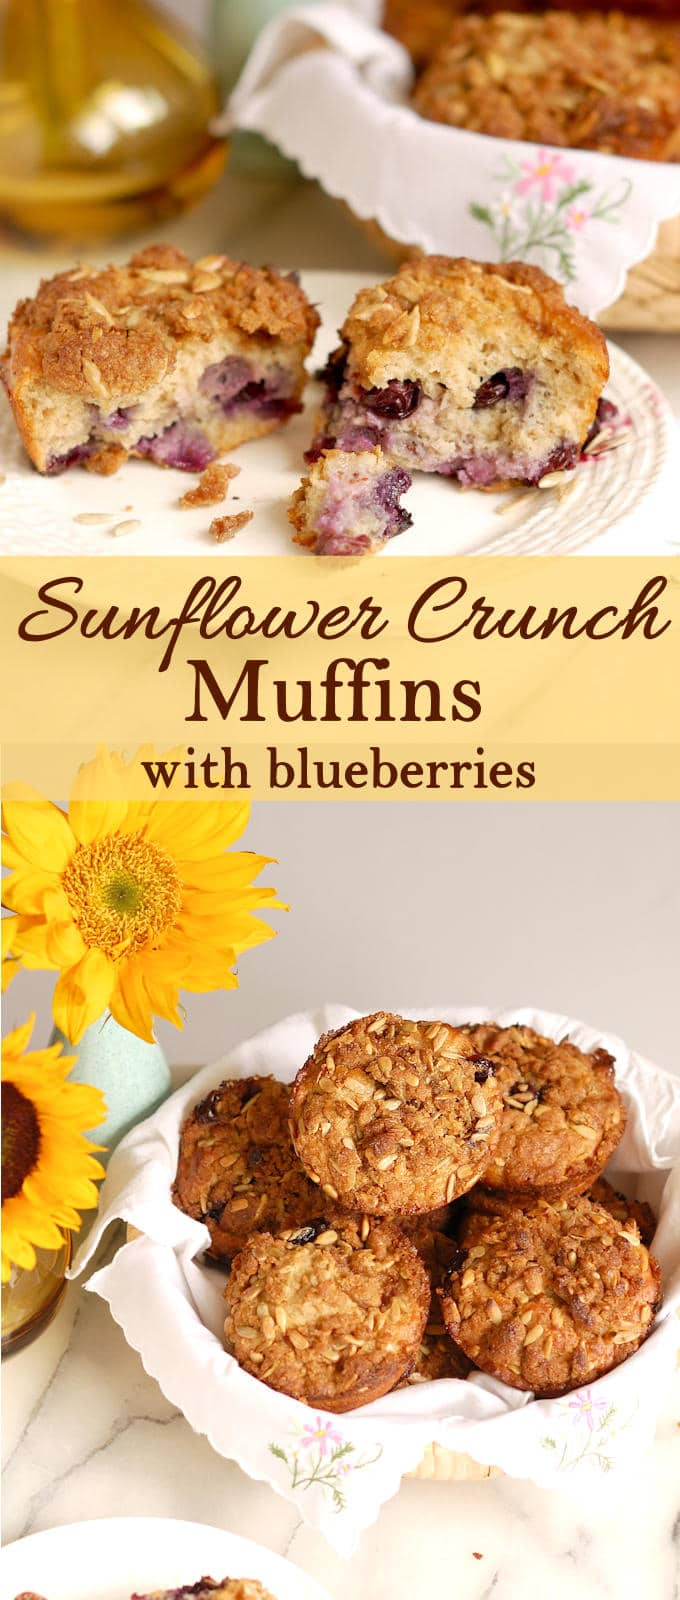 Have you ever baked with sunflower flour? Try it! Sunflower Crumb Muffins are moist and flavorful. Sunflower flour adds richness and great flavor to these yummy bites. #Breadbakers